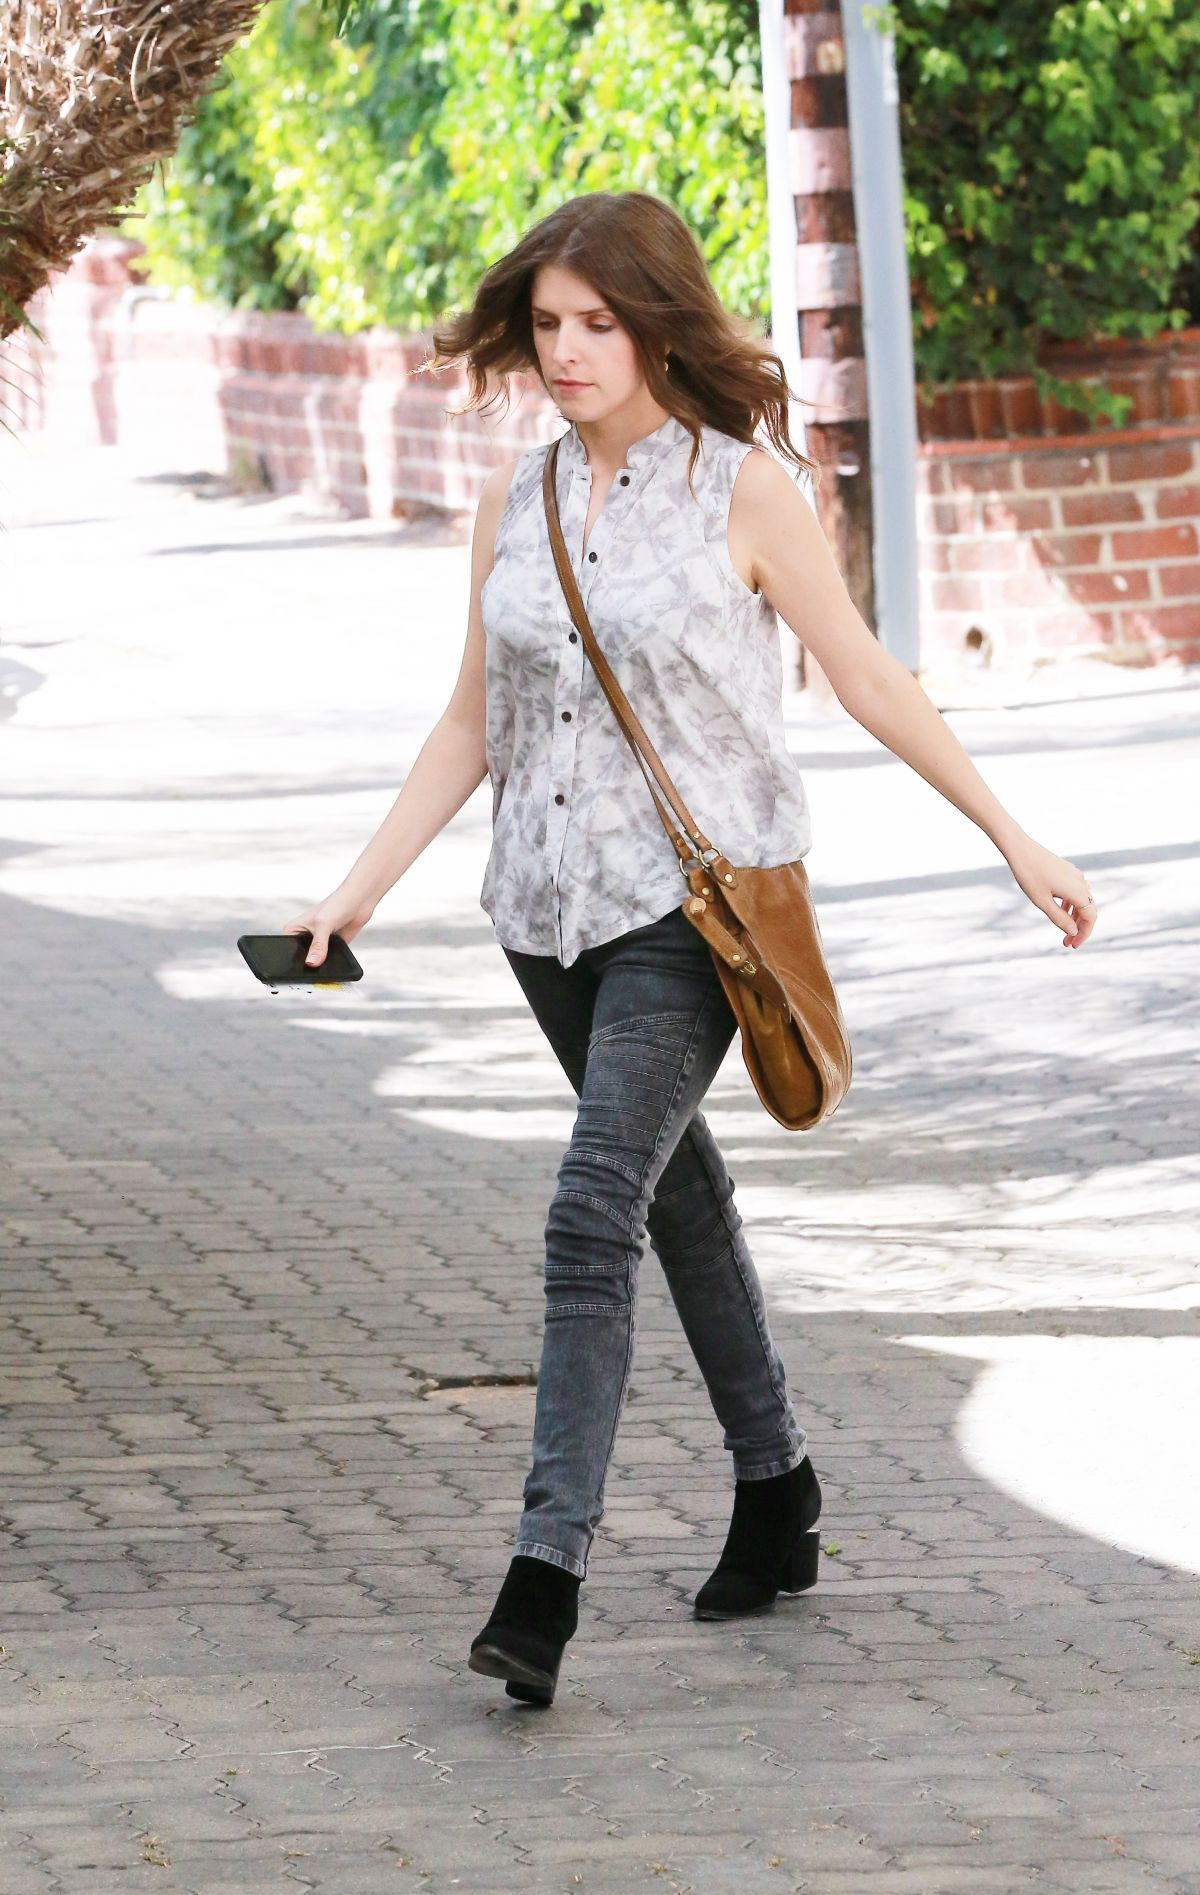 anna-kendrick-arrives-at-reese-witherspoon-s-office-in-santa-monica-09-28-2015_6